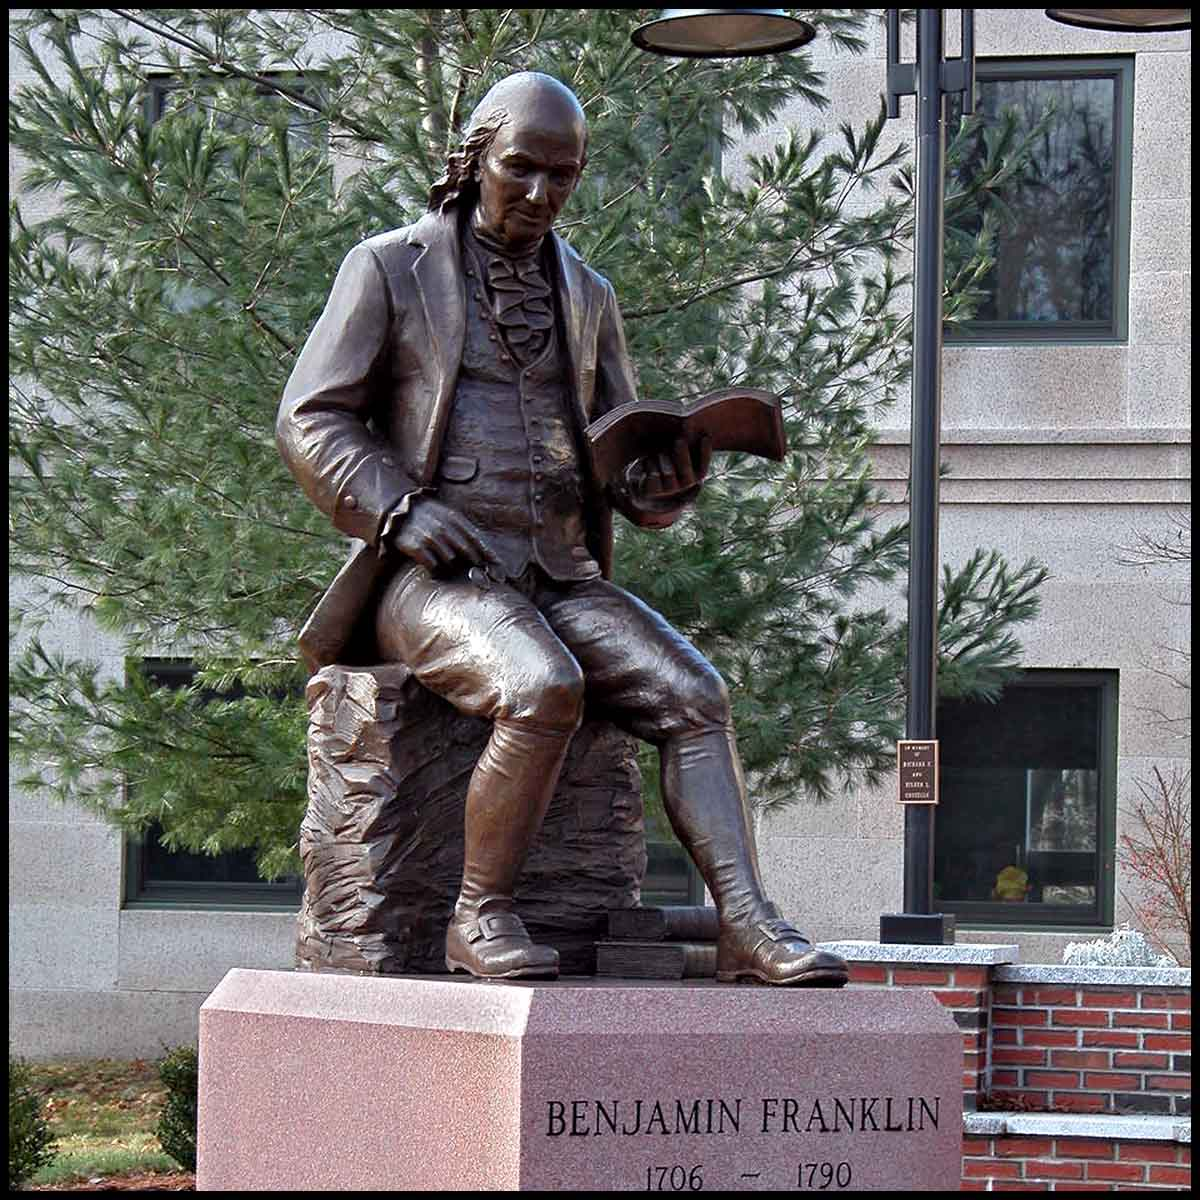 exterior photo of bronze sculpture of Benjamin Franklin